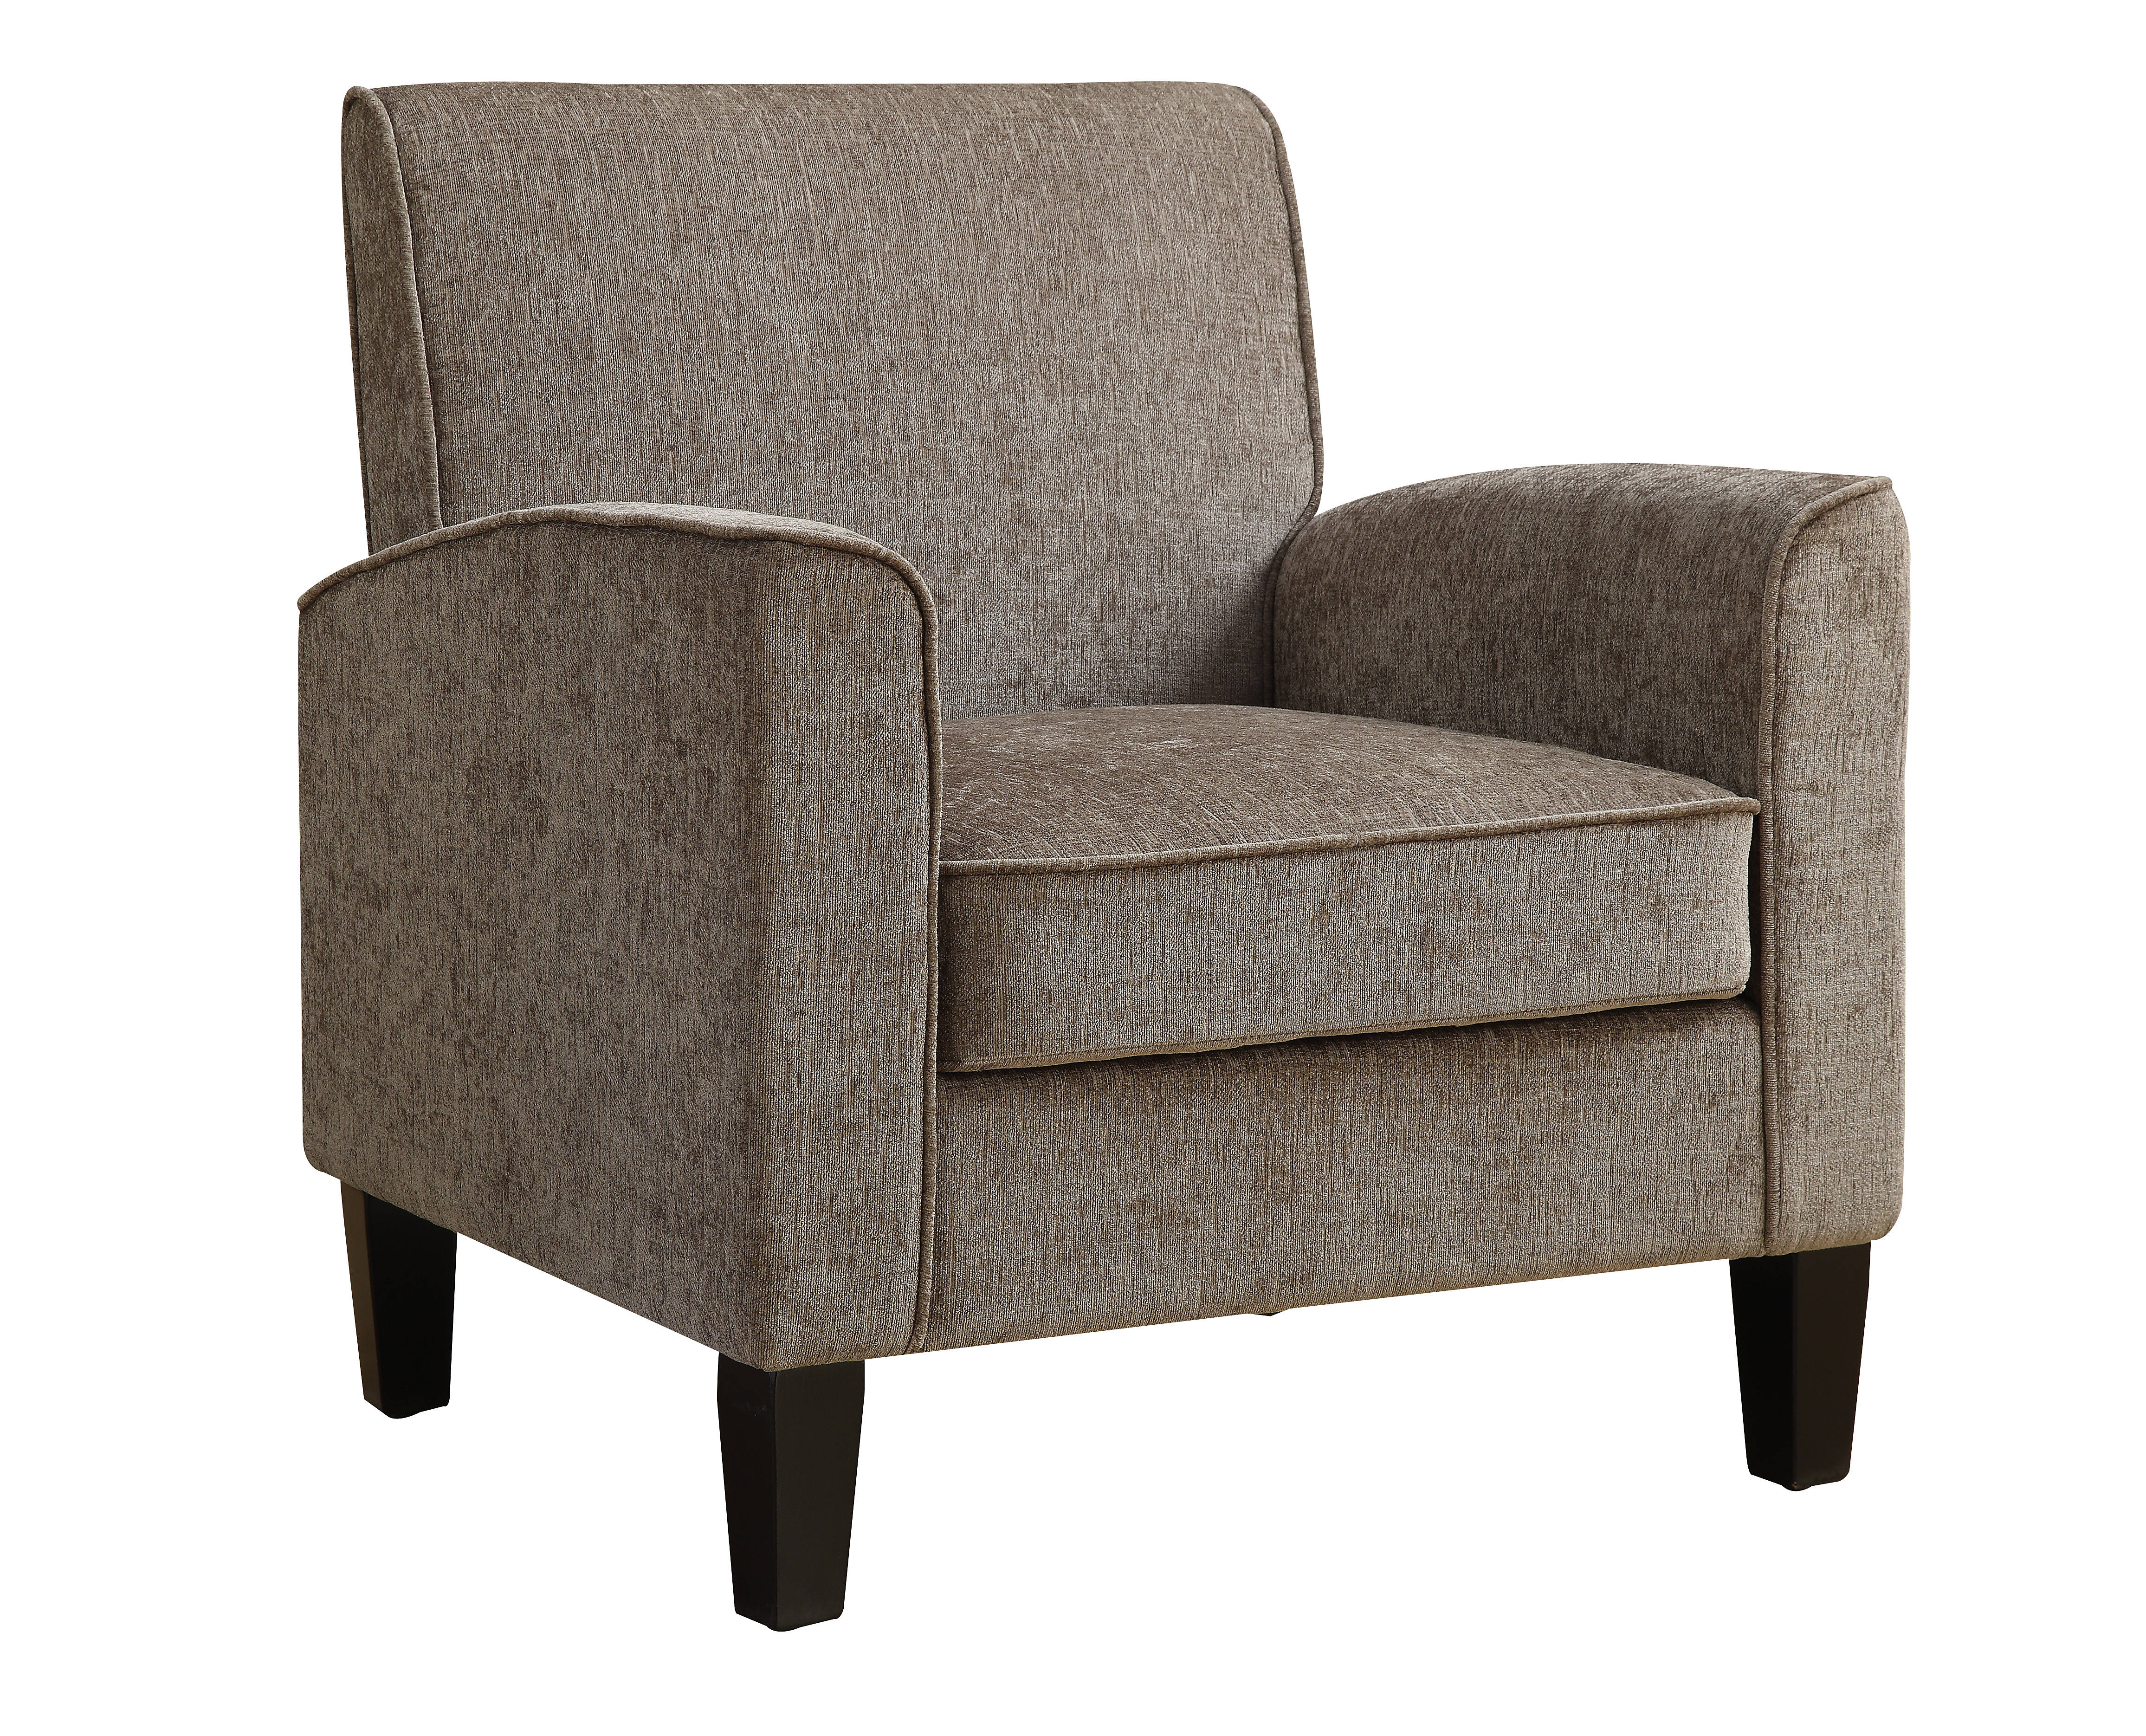 Discontinued Pulaski Bedroom Furniture Pulaski Furniture Grey Track Arm Accent Chair The Classy